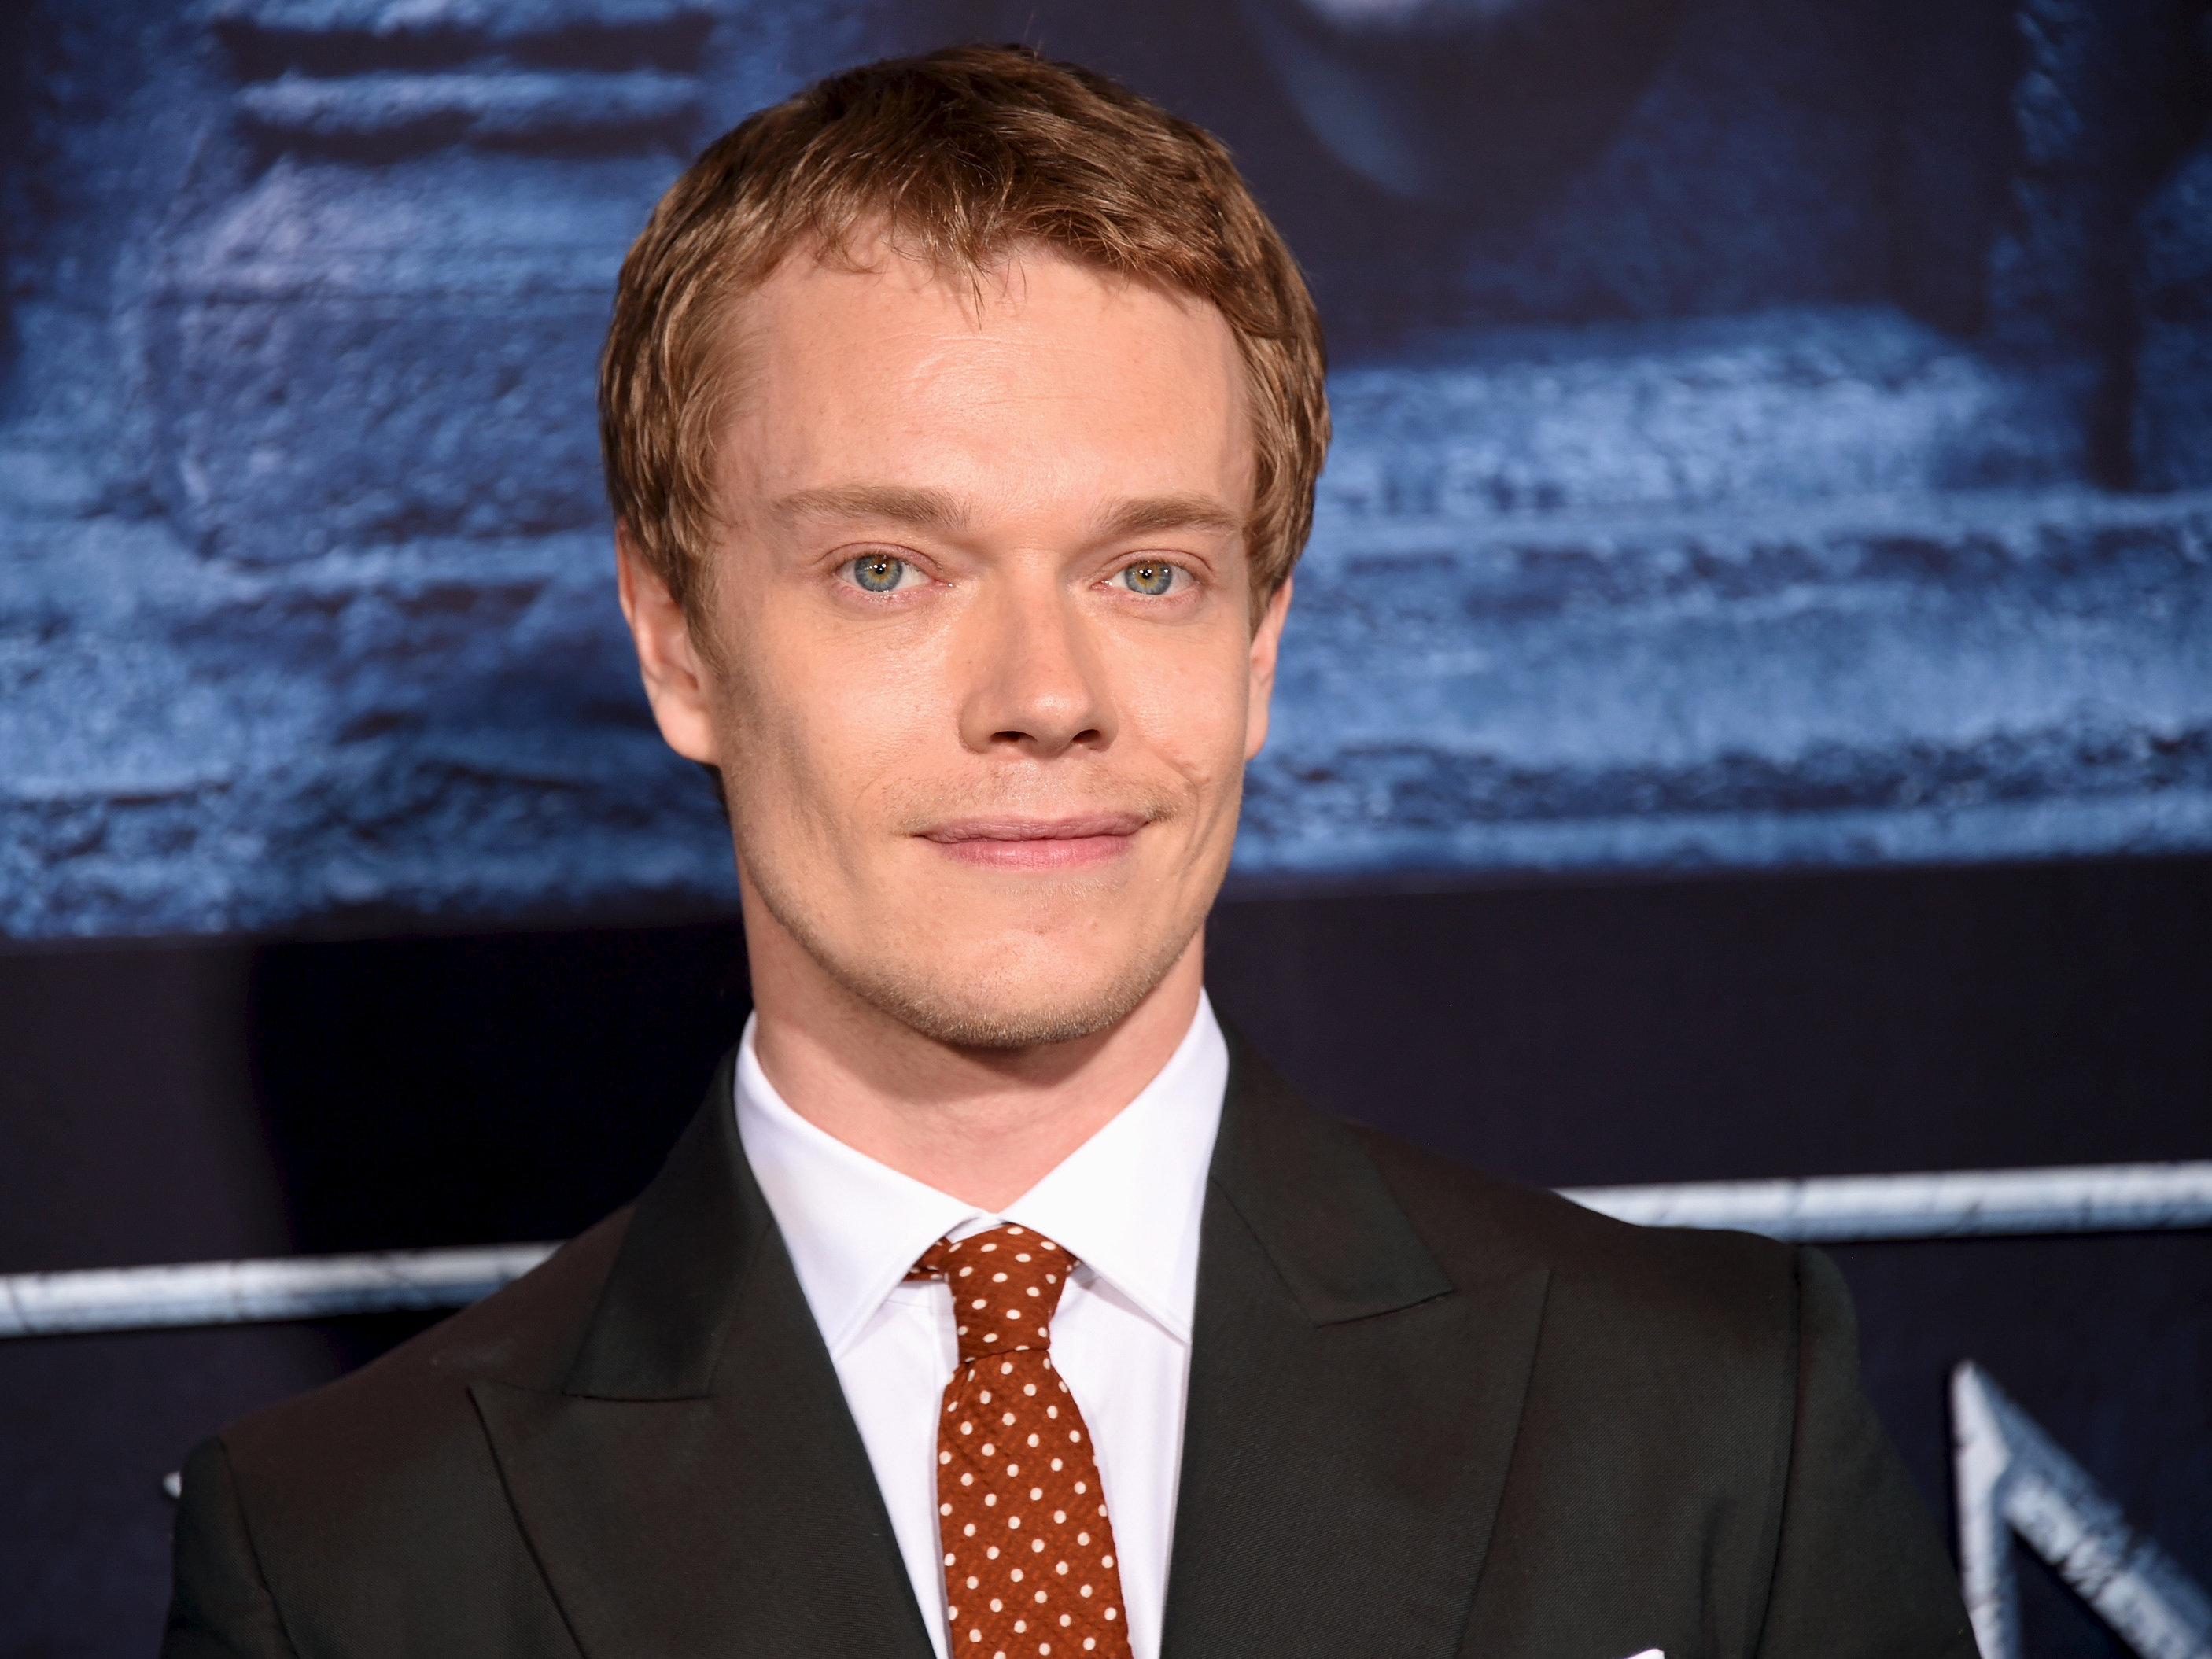 Game Of Thrones, Theon, Greyjoy, AKA Alfie Allen, Alfie Allen, Balon Greyjoy